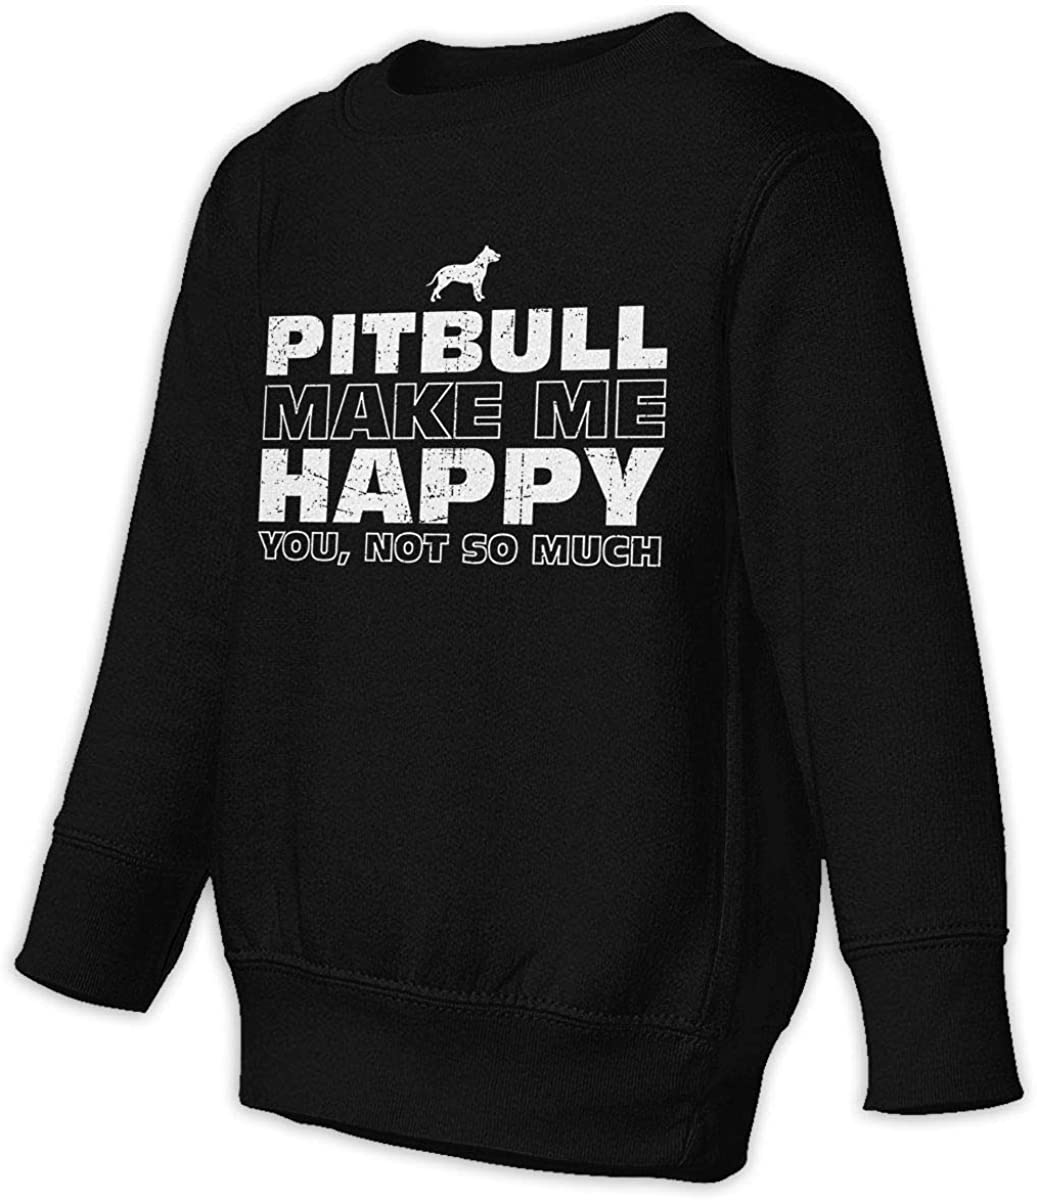 wudici Pitbull Boys Girls Pullover Sweaters Crewneck Sweatshirts Clothes for 2-6 Years Old Children